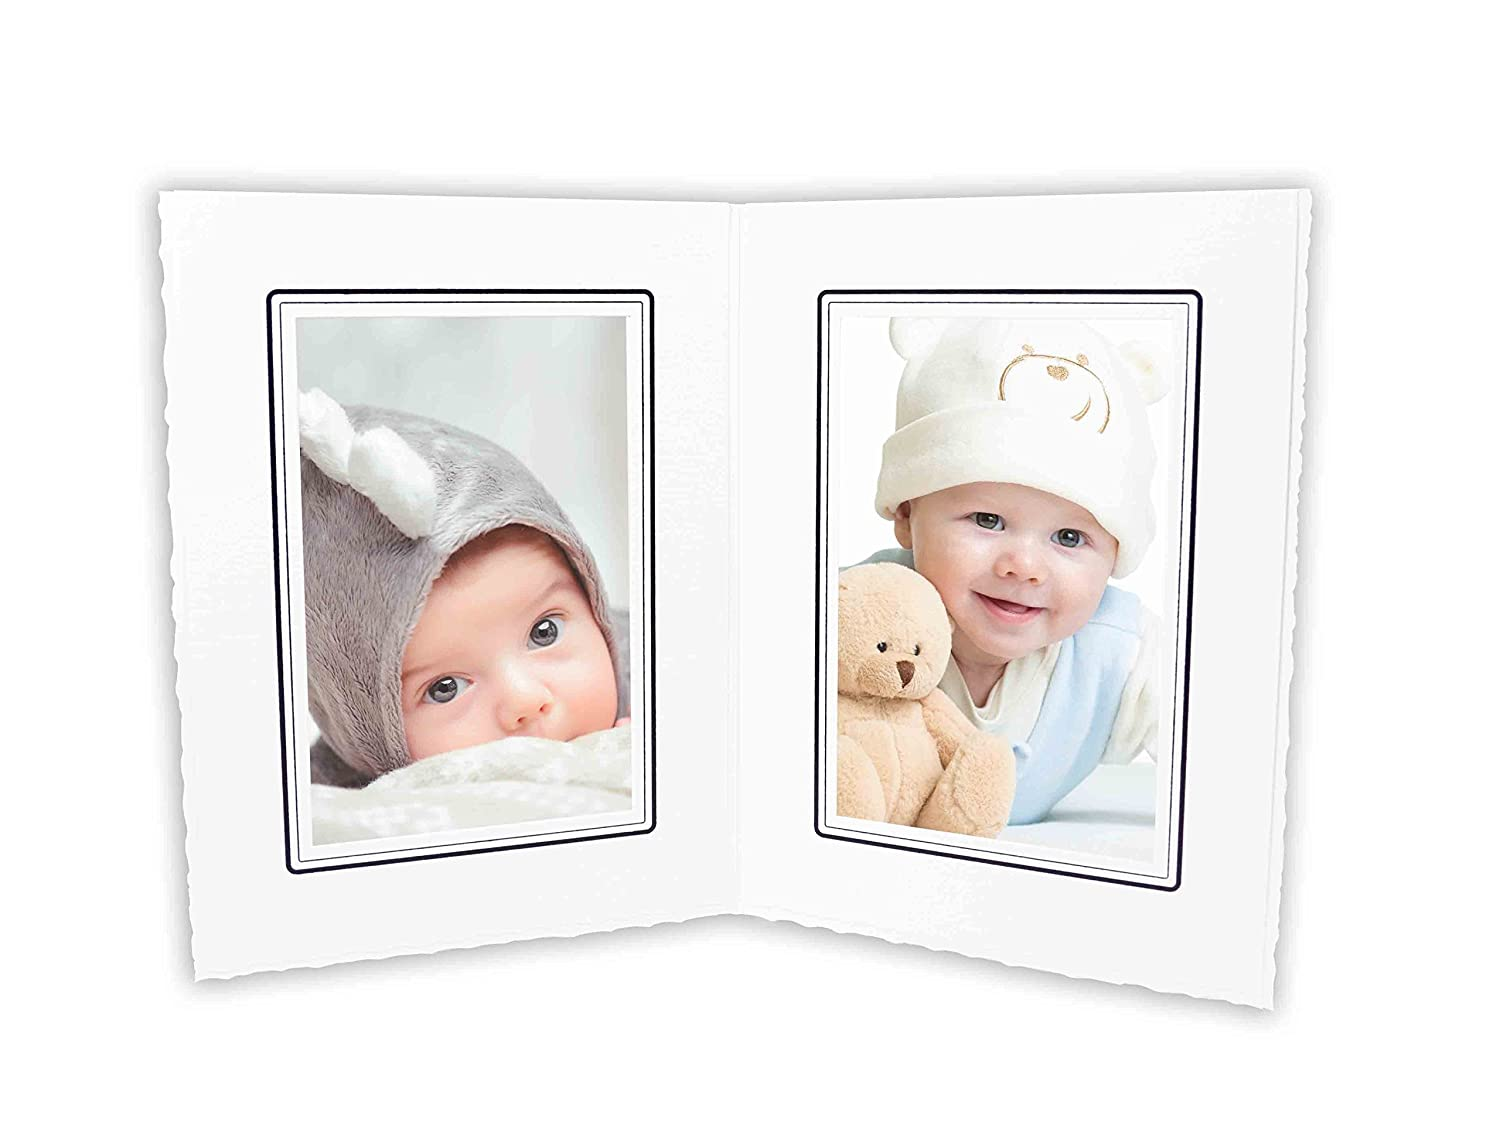 Golden State Art, Cardboard Photo Folder for Double 4x6 Photo (Pack of 50) GS004 White Color